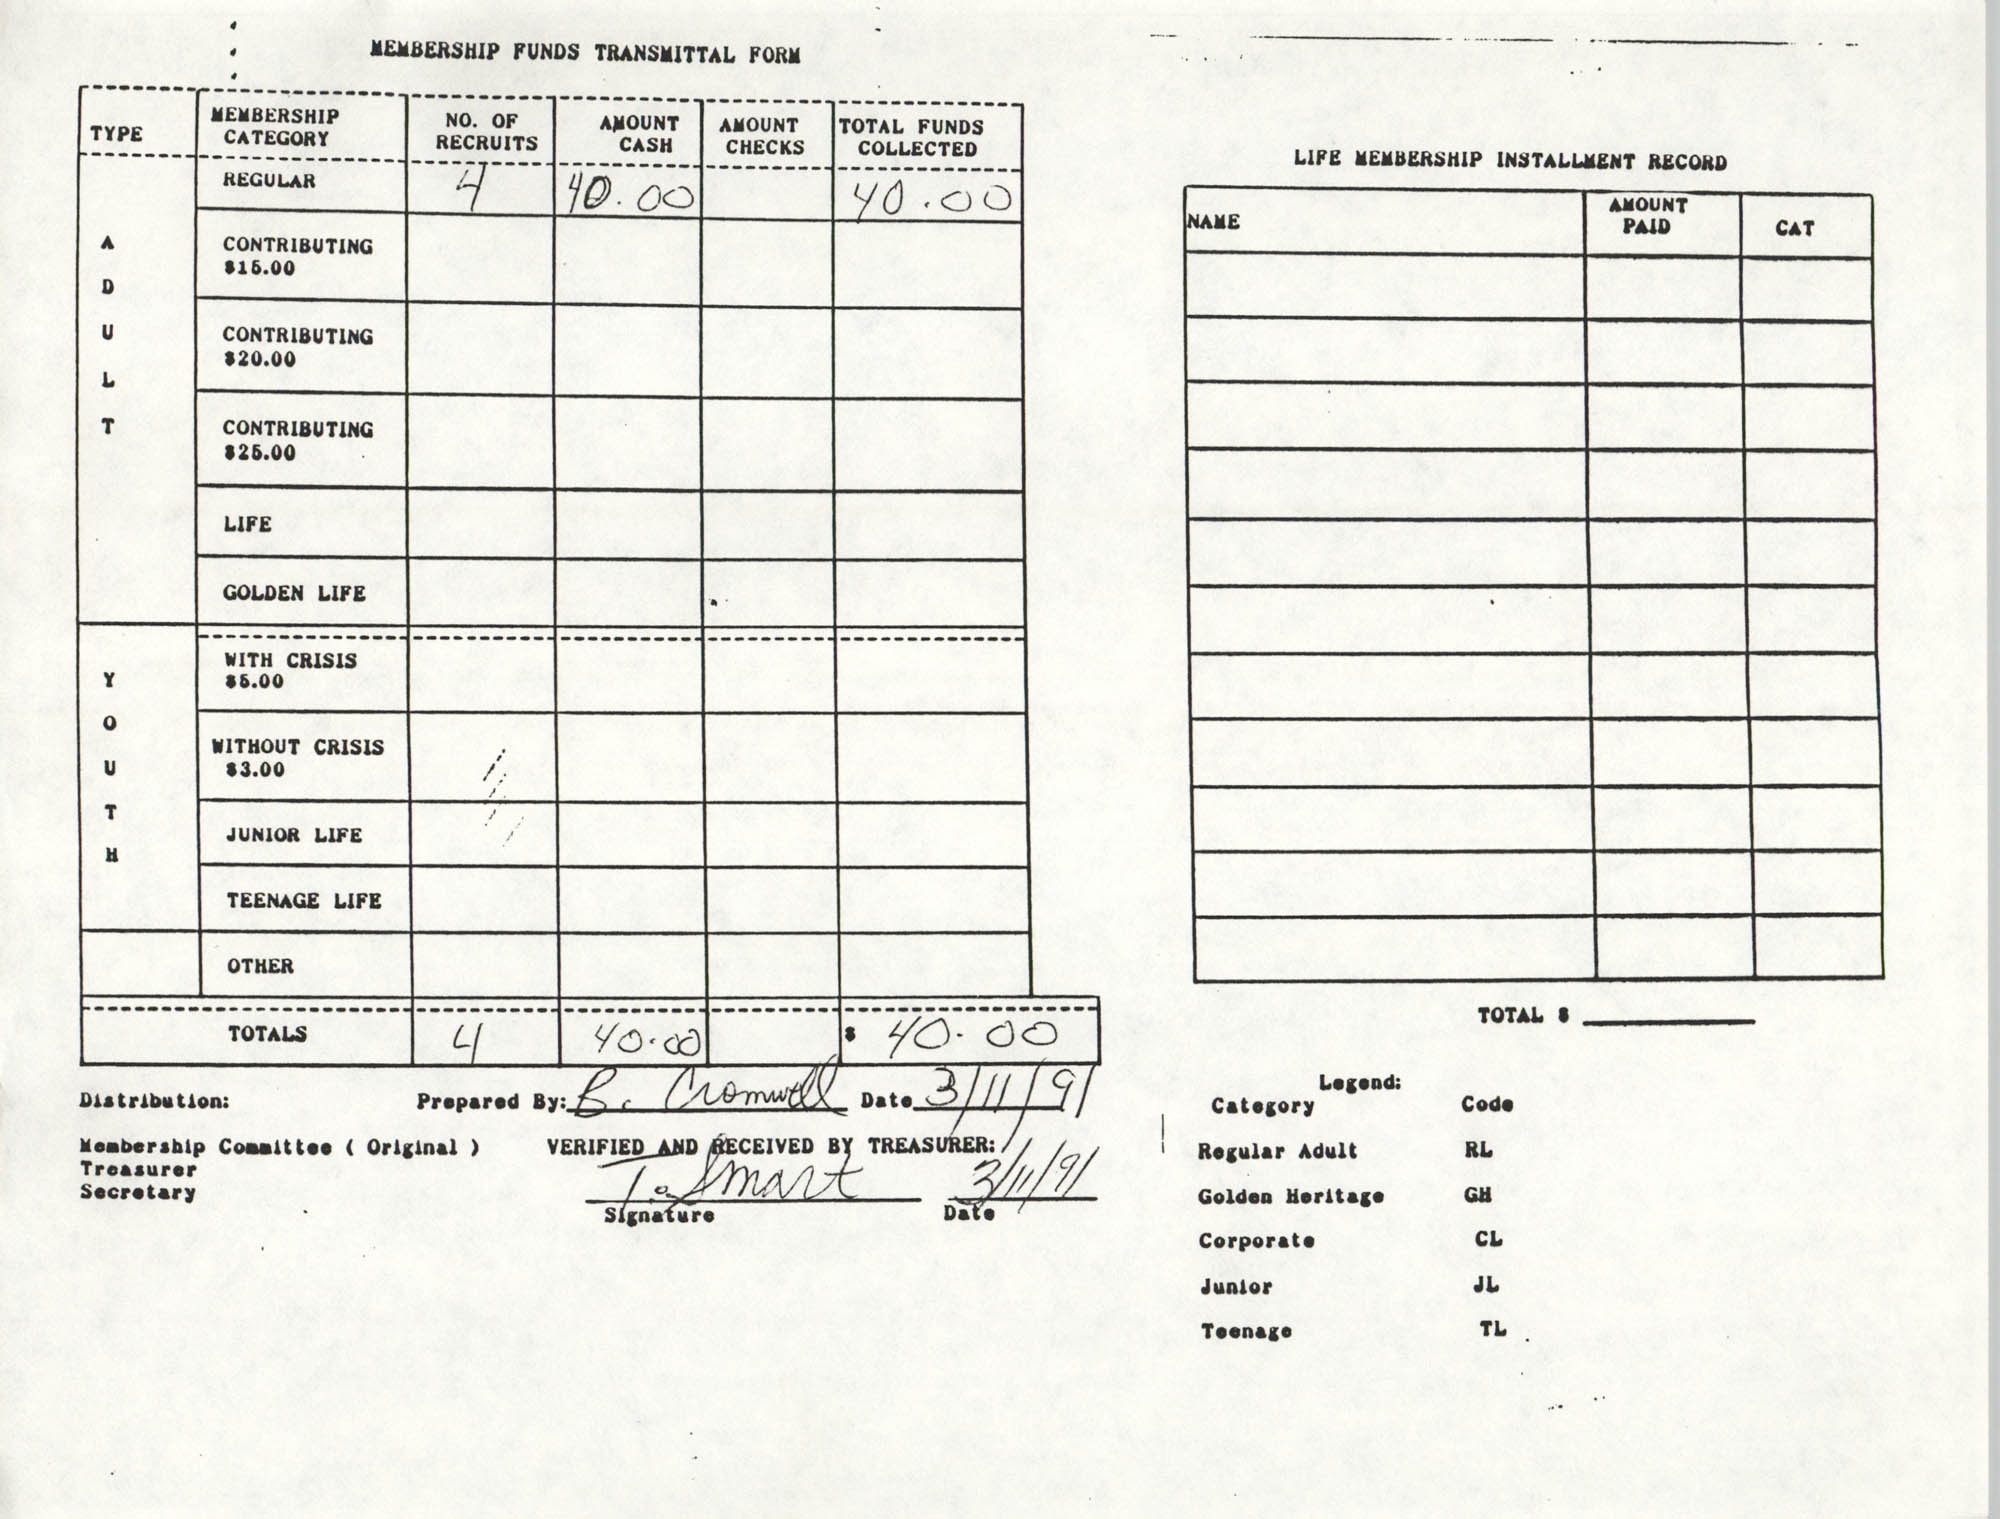 Charleston Branch of the NAACP Funds Transmittal Forms, March 1991, Page 5